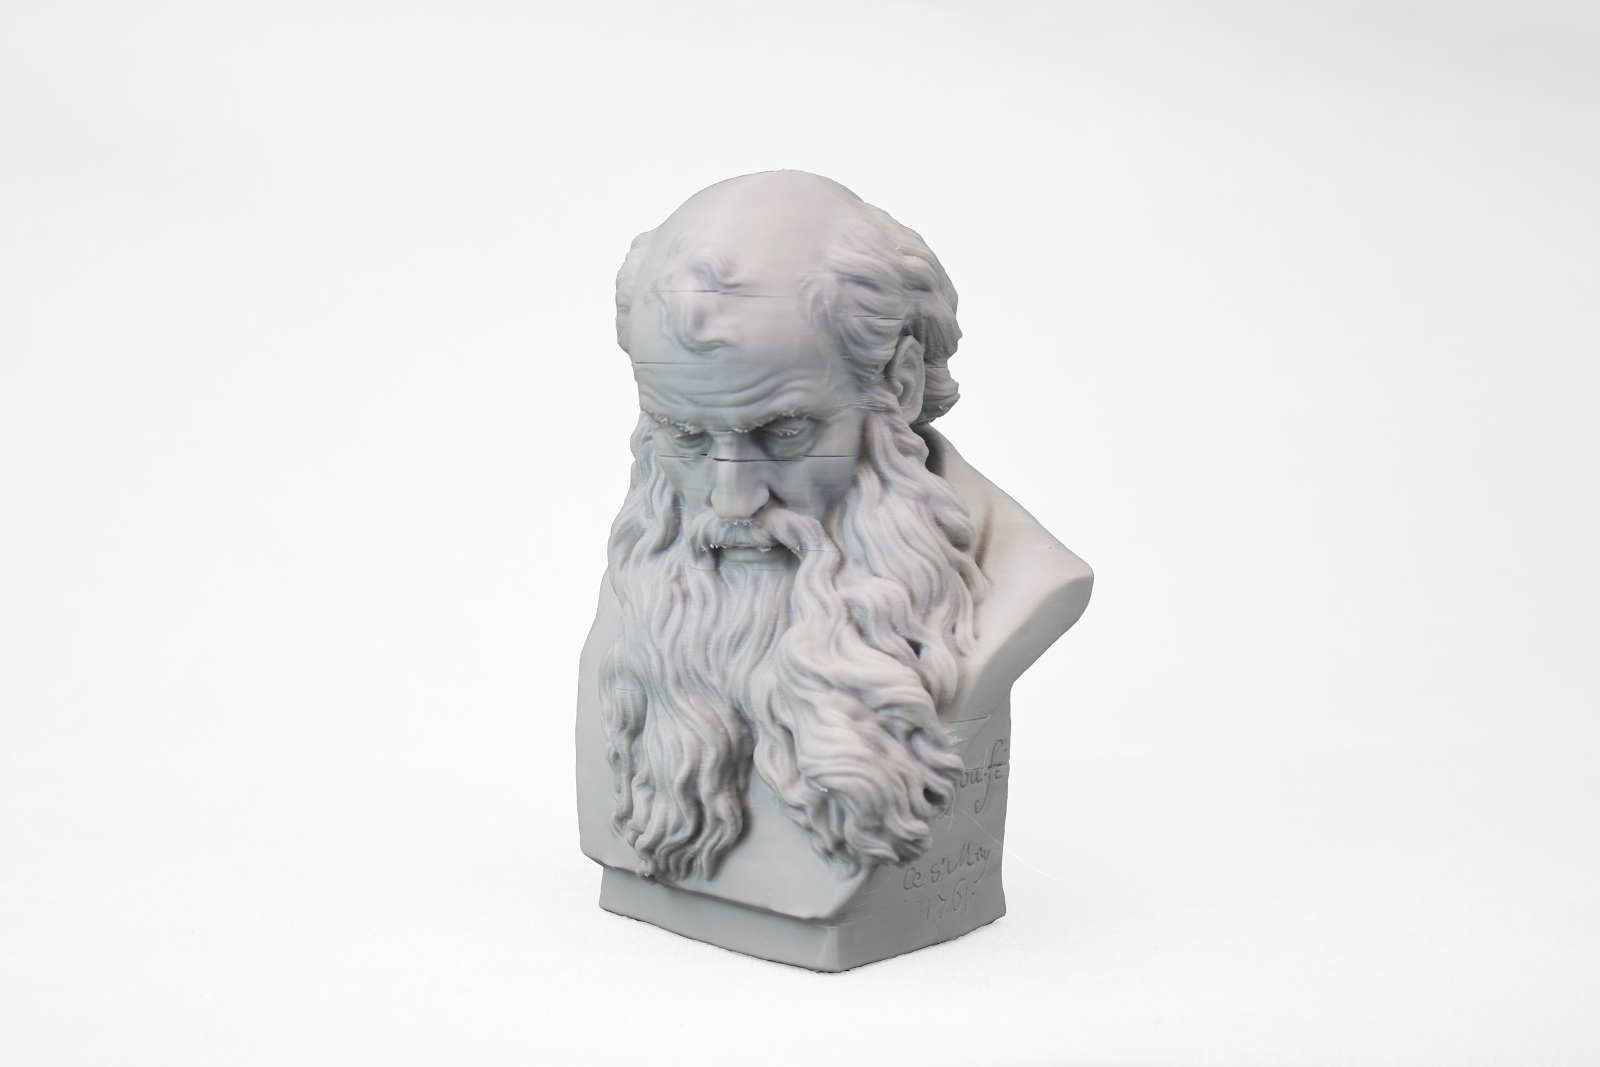 The 3D printed bearded man bust.